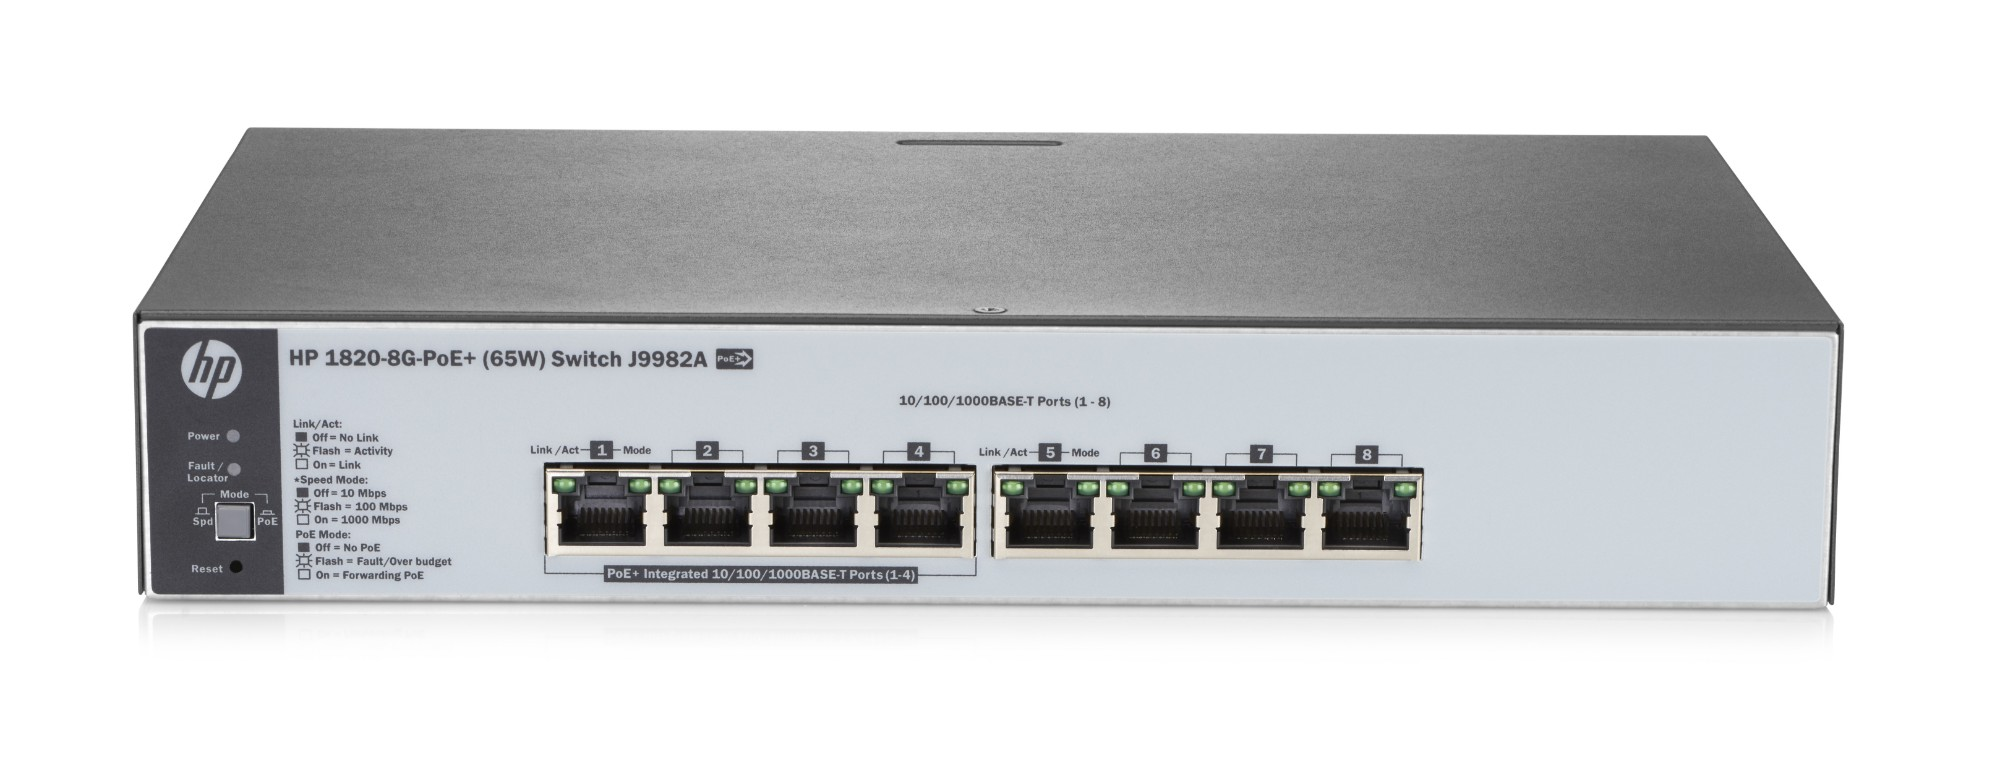 Hewlett Packard Enterprise 1820-8G-PoE+ (65W) Managed network switch L2 Gigabit Ethernet (10/100/1000) Power over Ethernet (PoE) 1U Grey